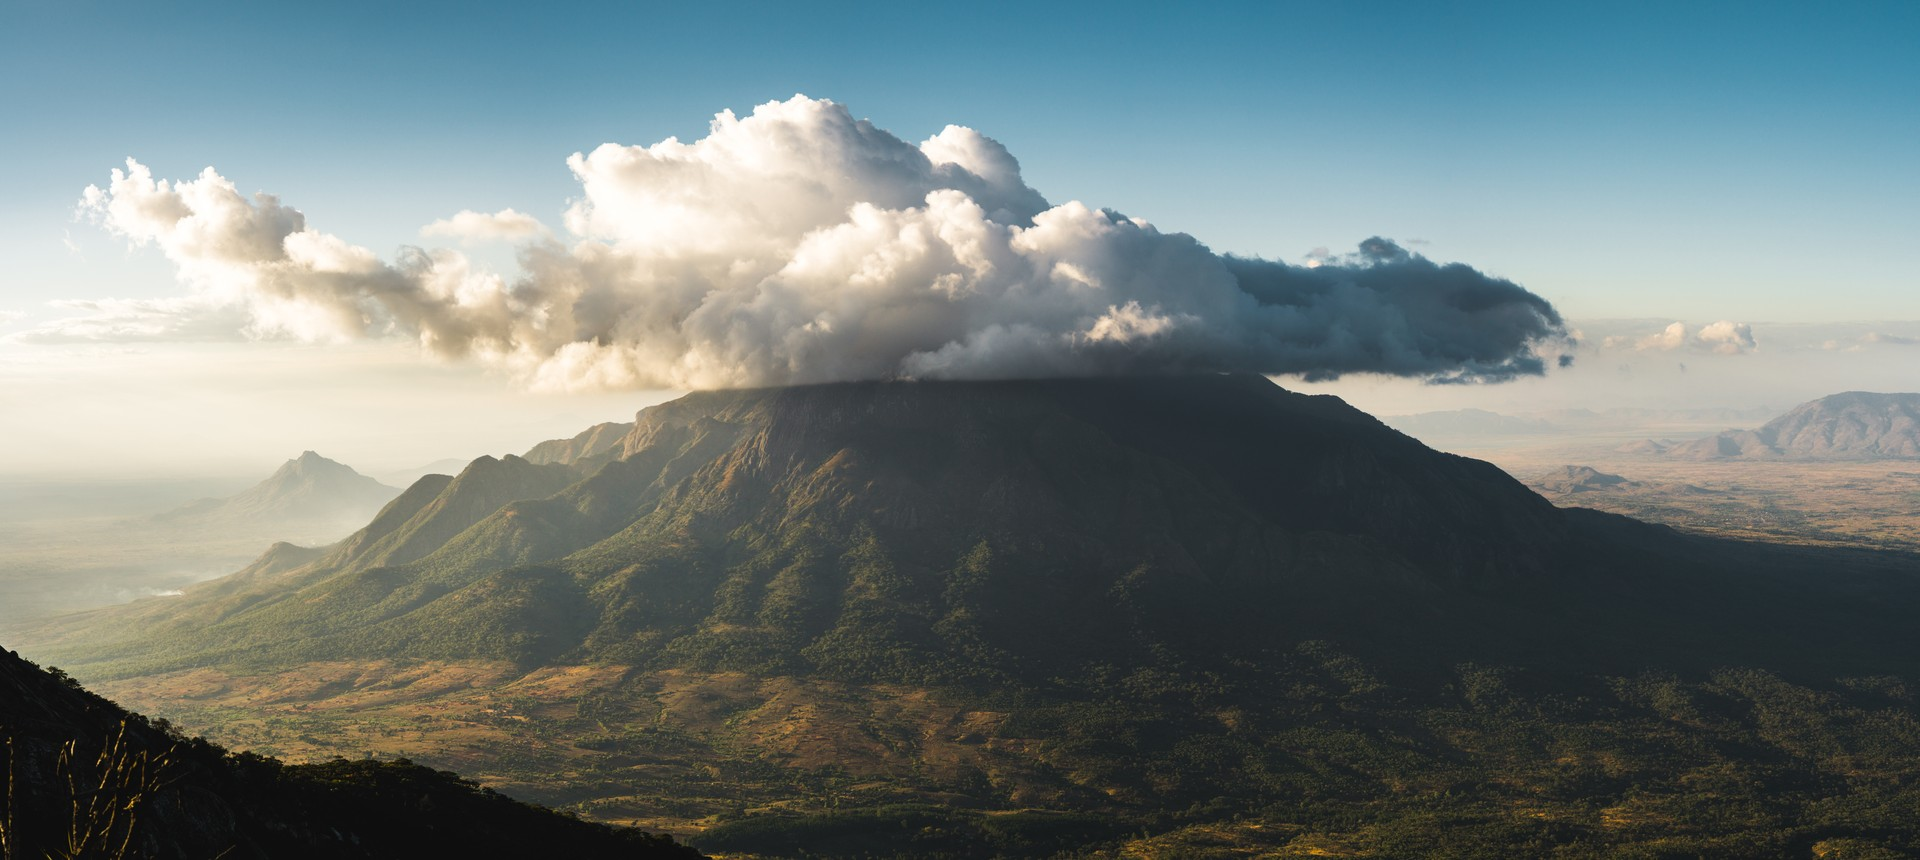 Mount Mulanje in Namibia with a hat of clouds